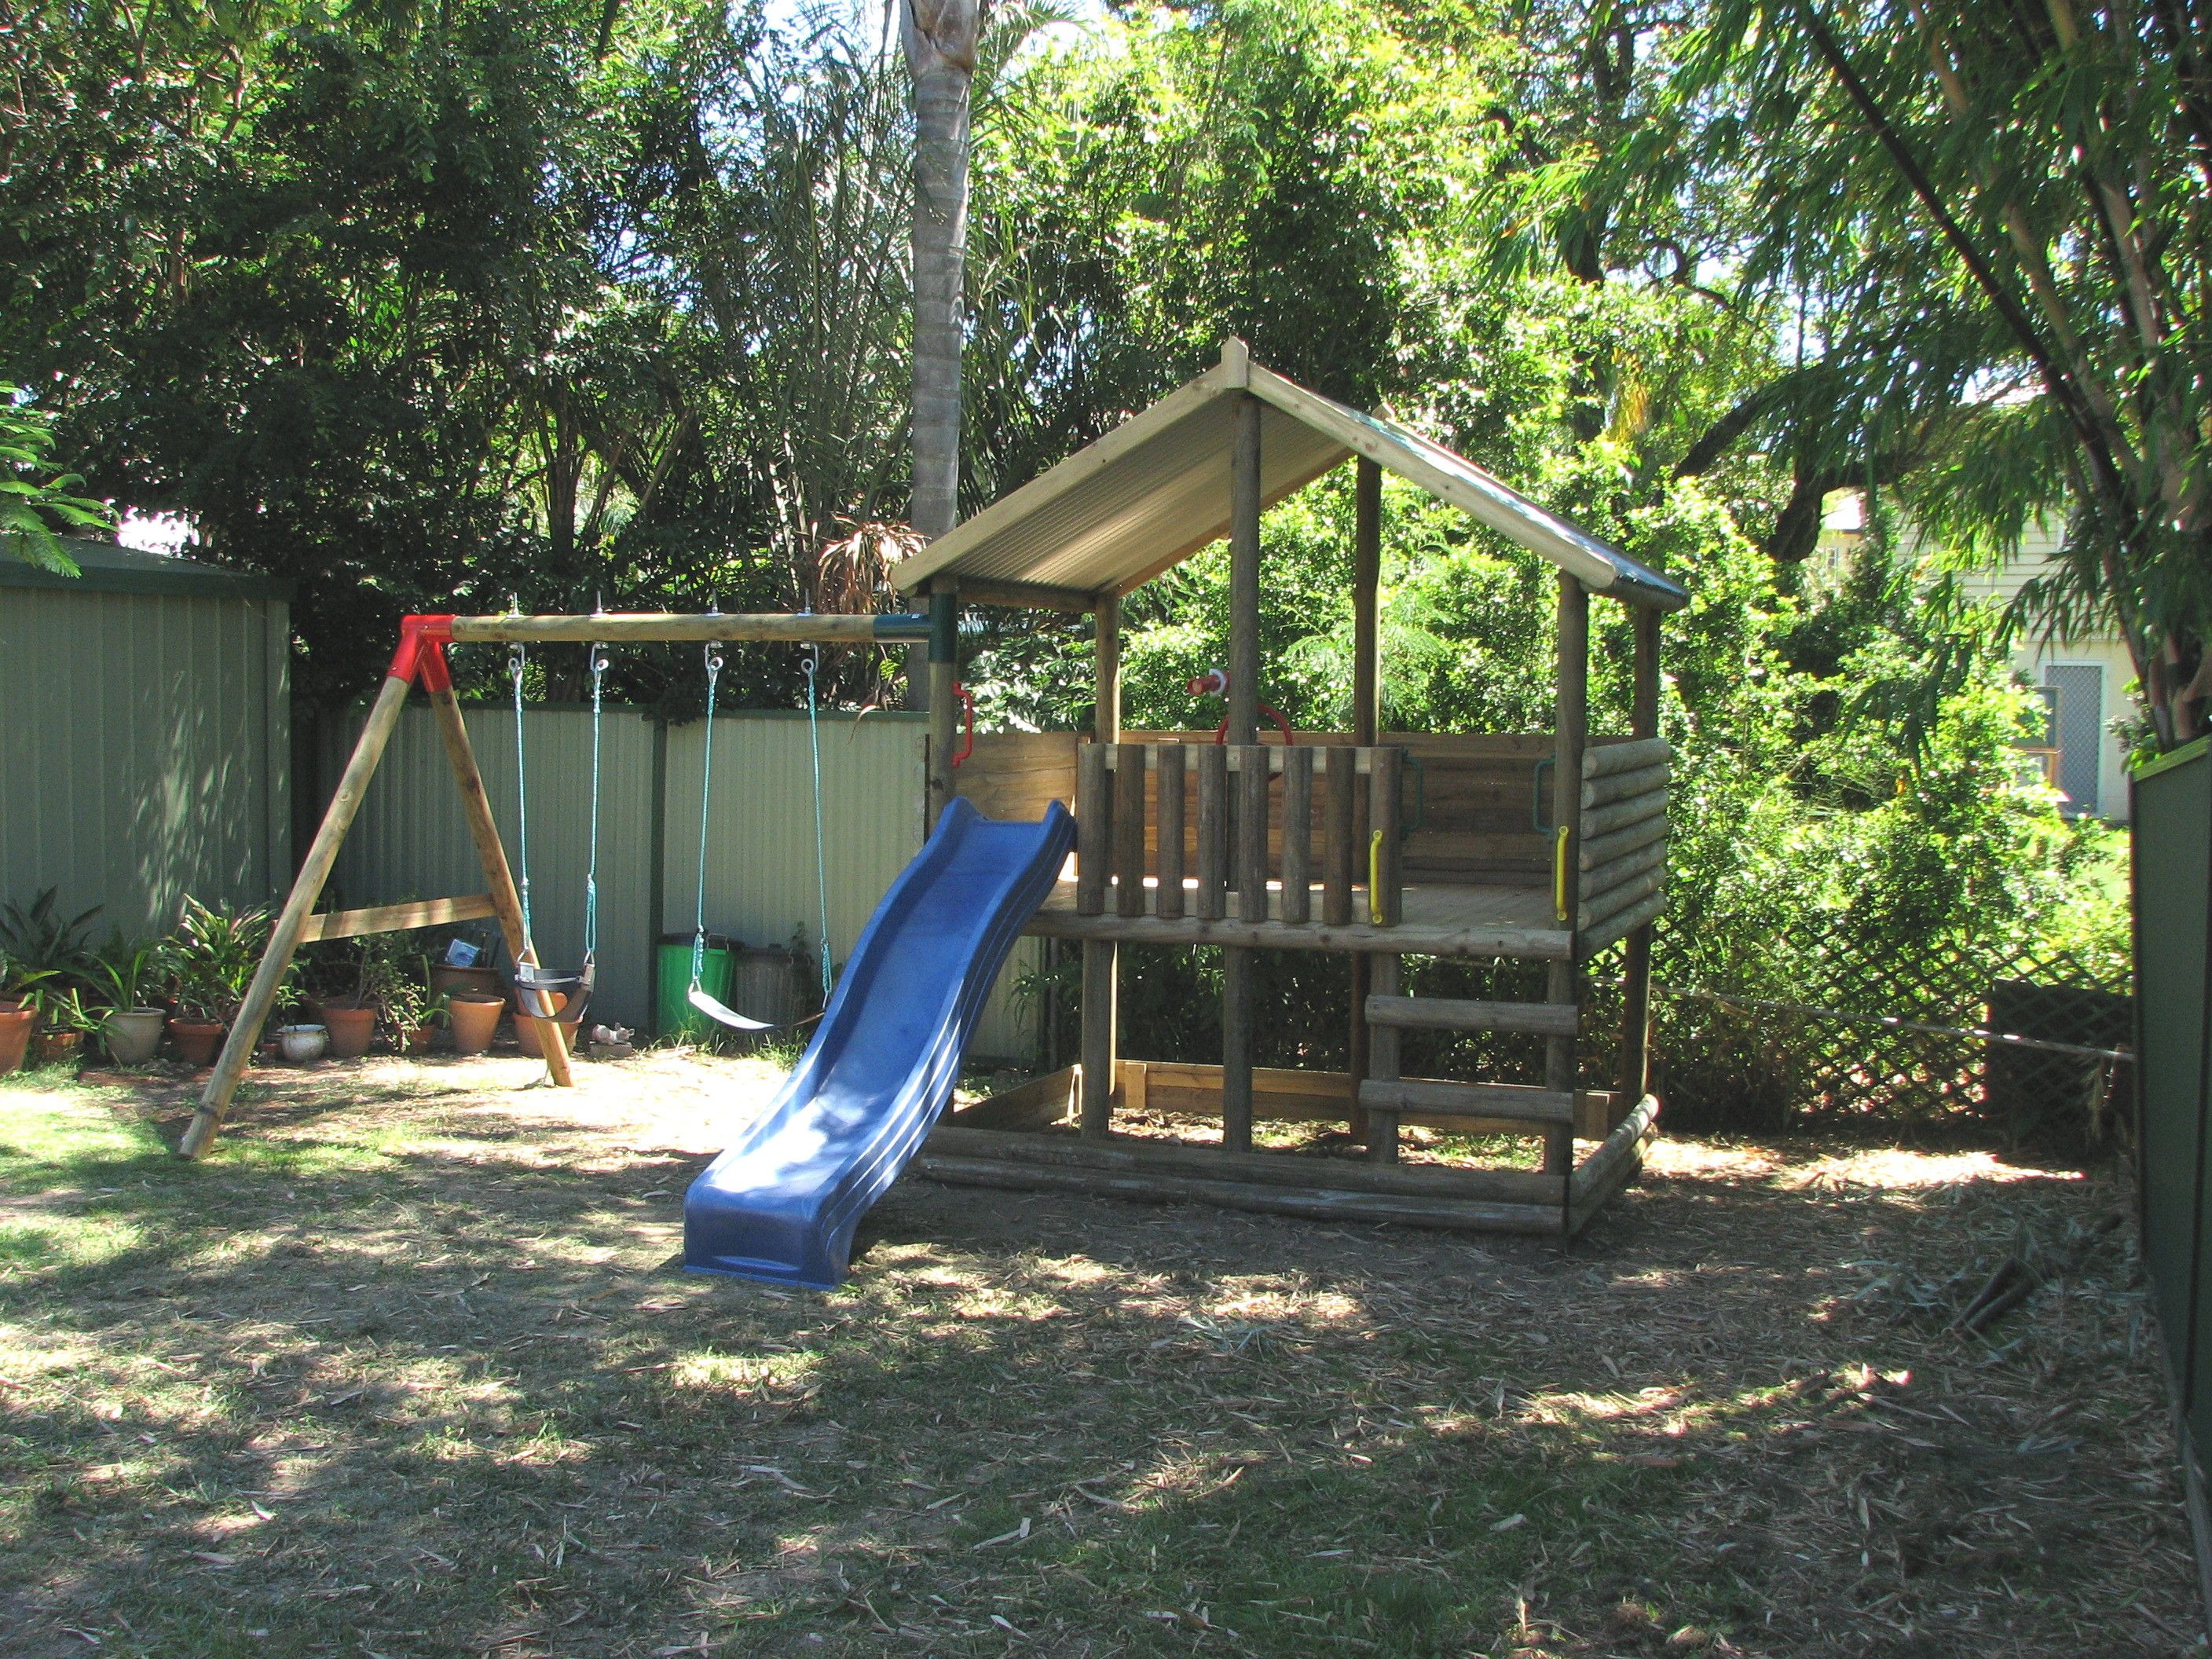 Fort lytton diy flat pack extra for swing set for Homemade forts outdoors